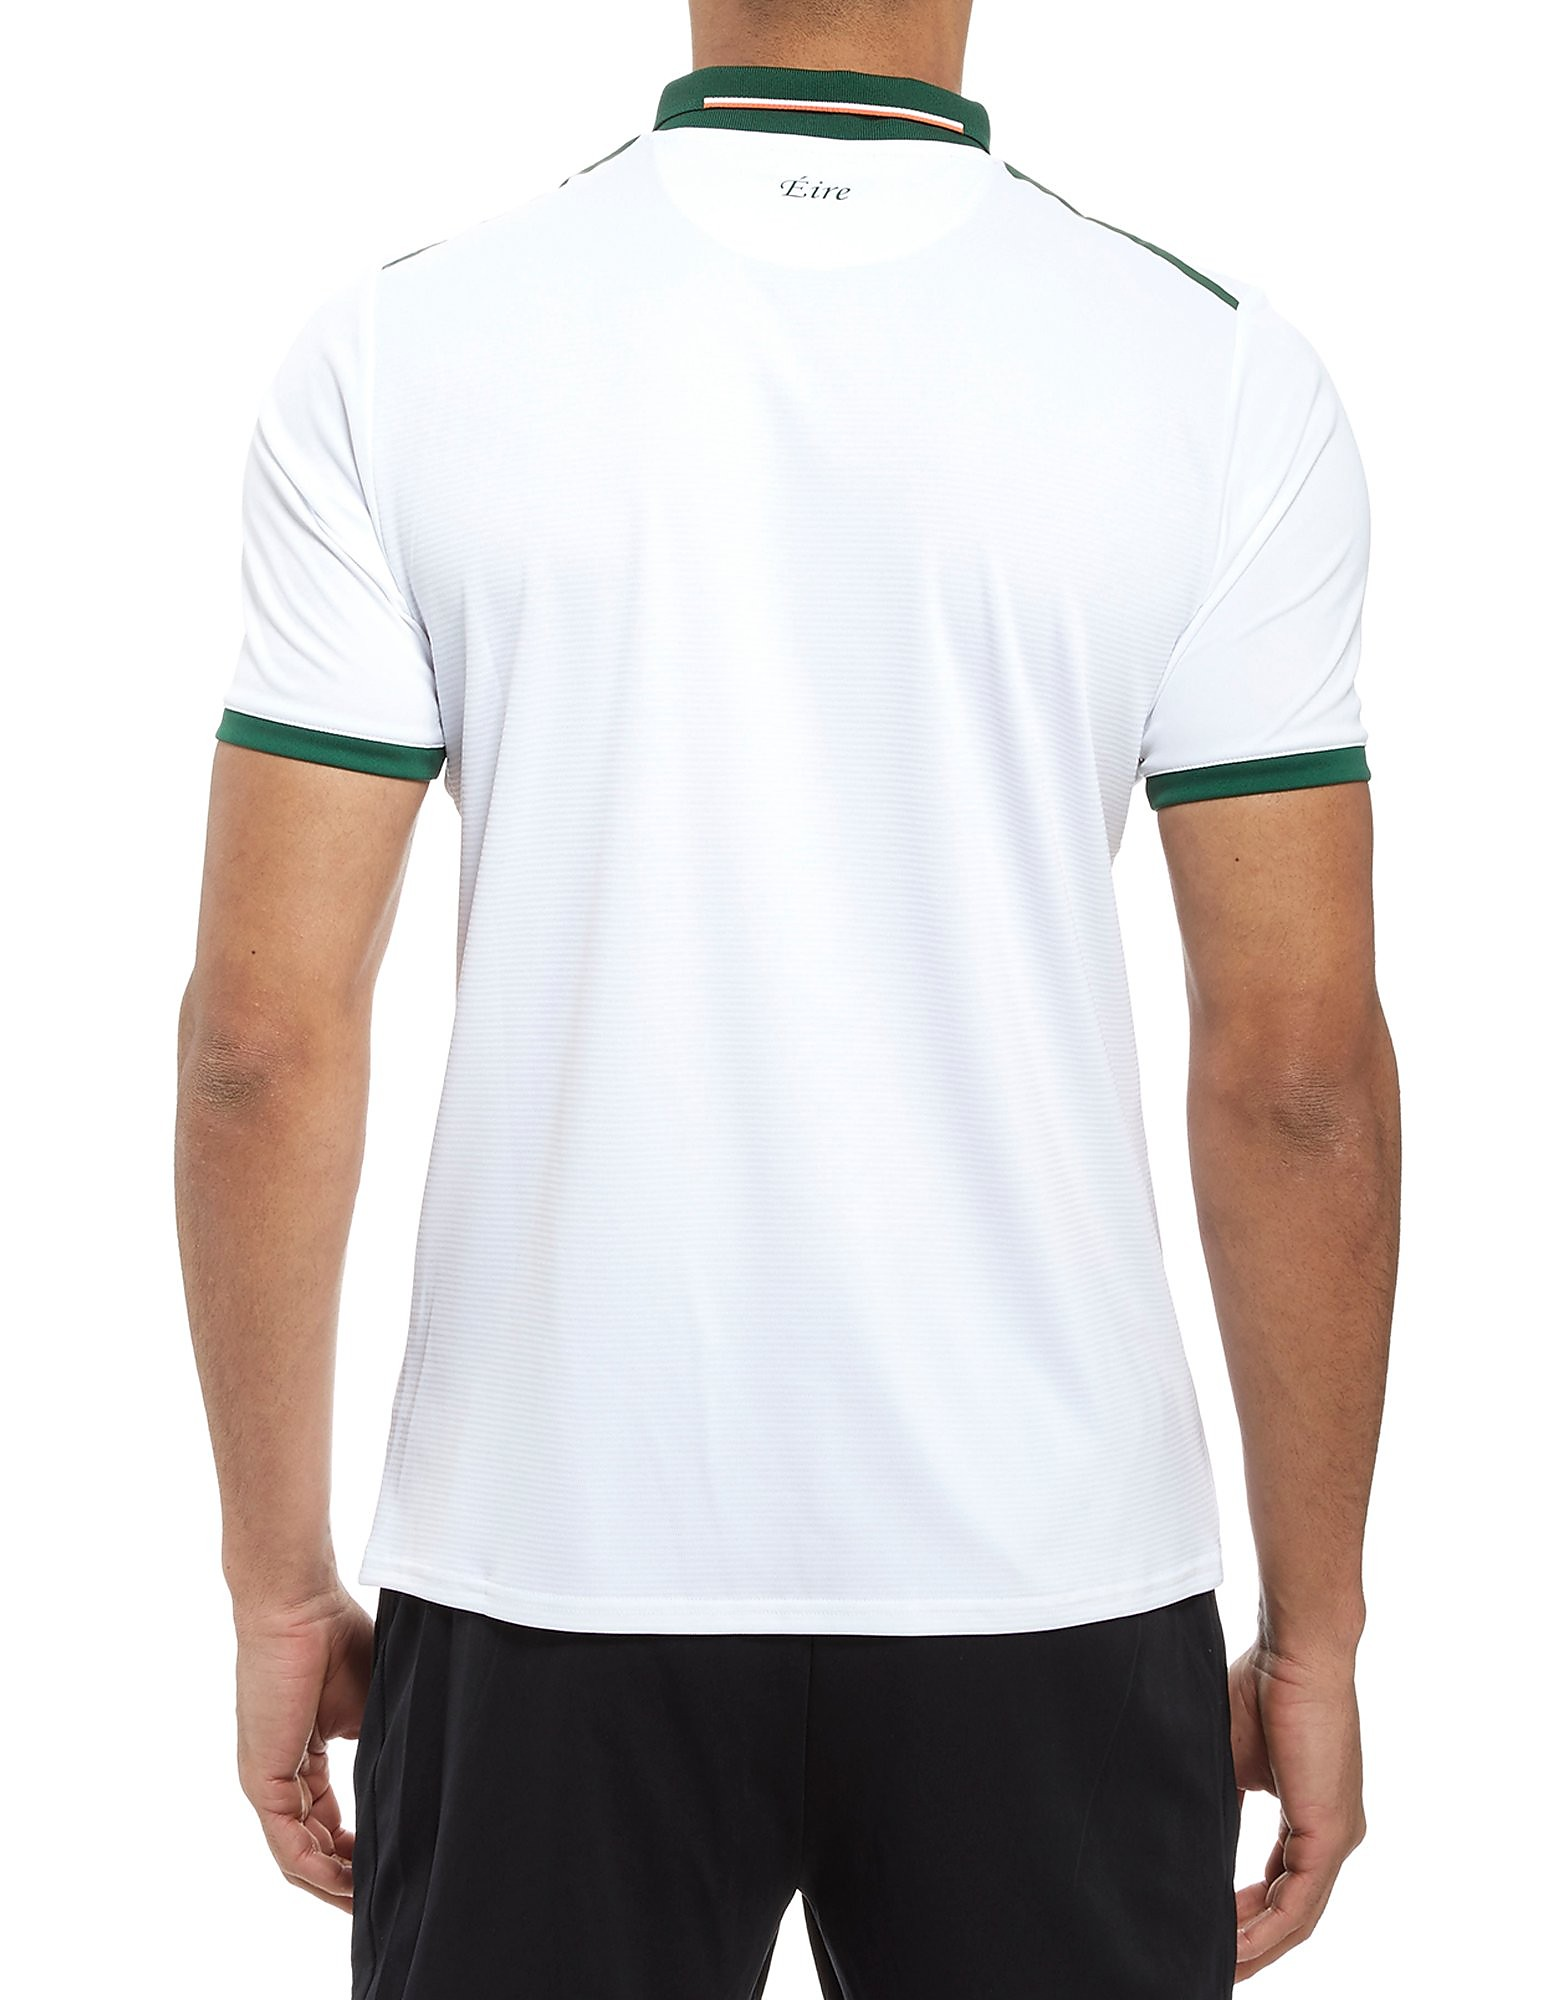 New Balance Republic of Ireland Away Shirt